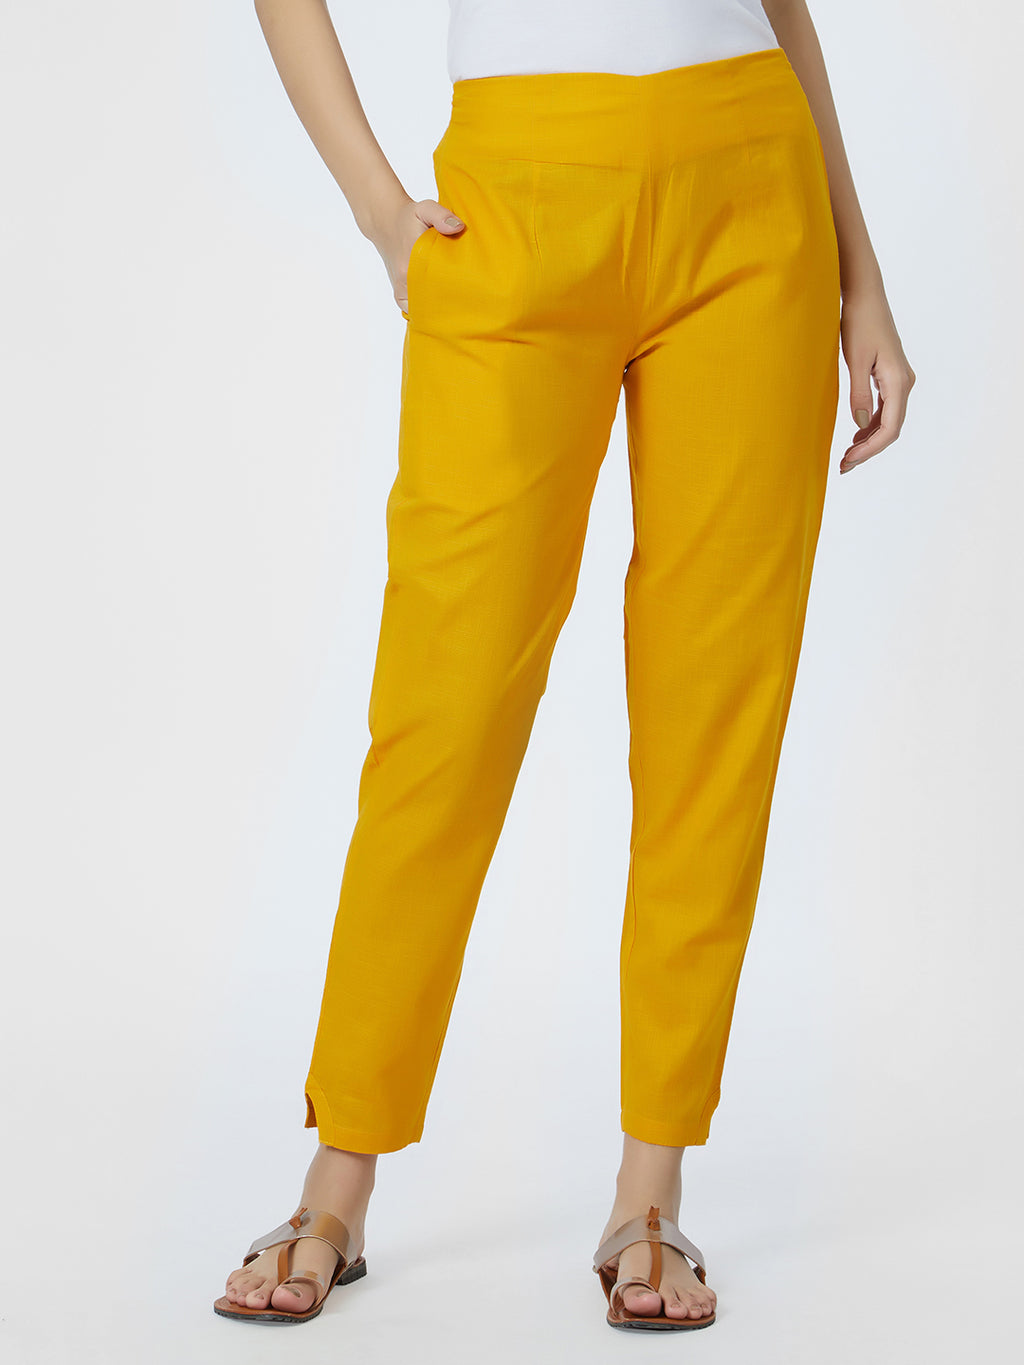 Narrow Mustard Pants